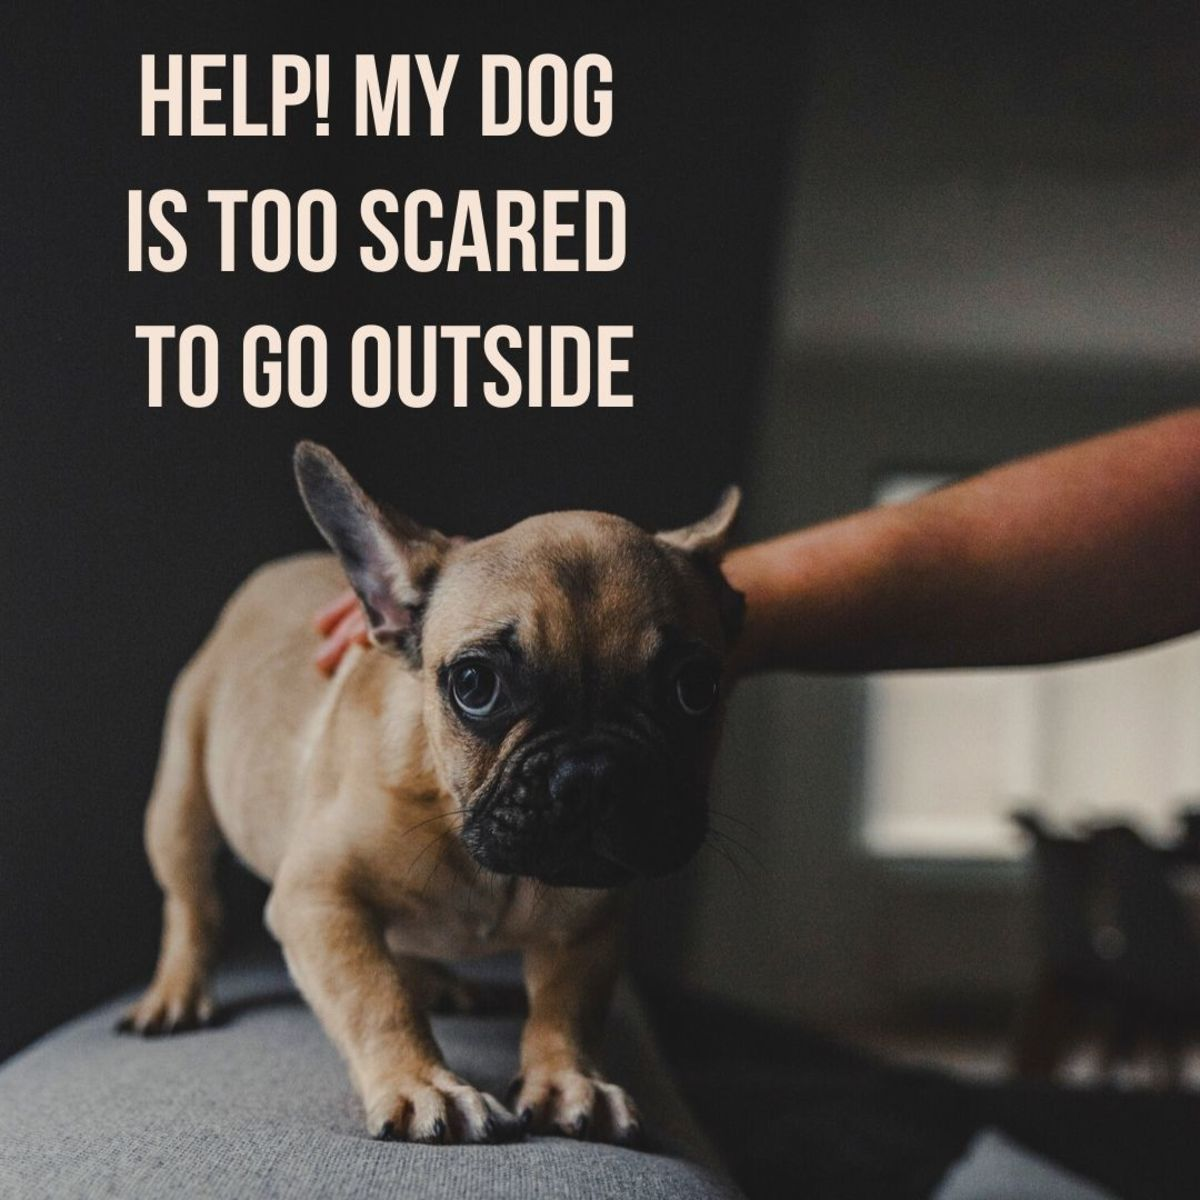 Why doesn't my dog want to go outside?